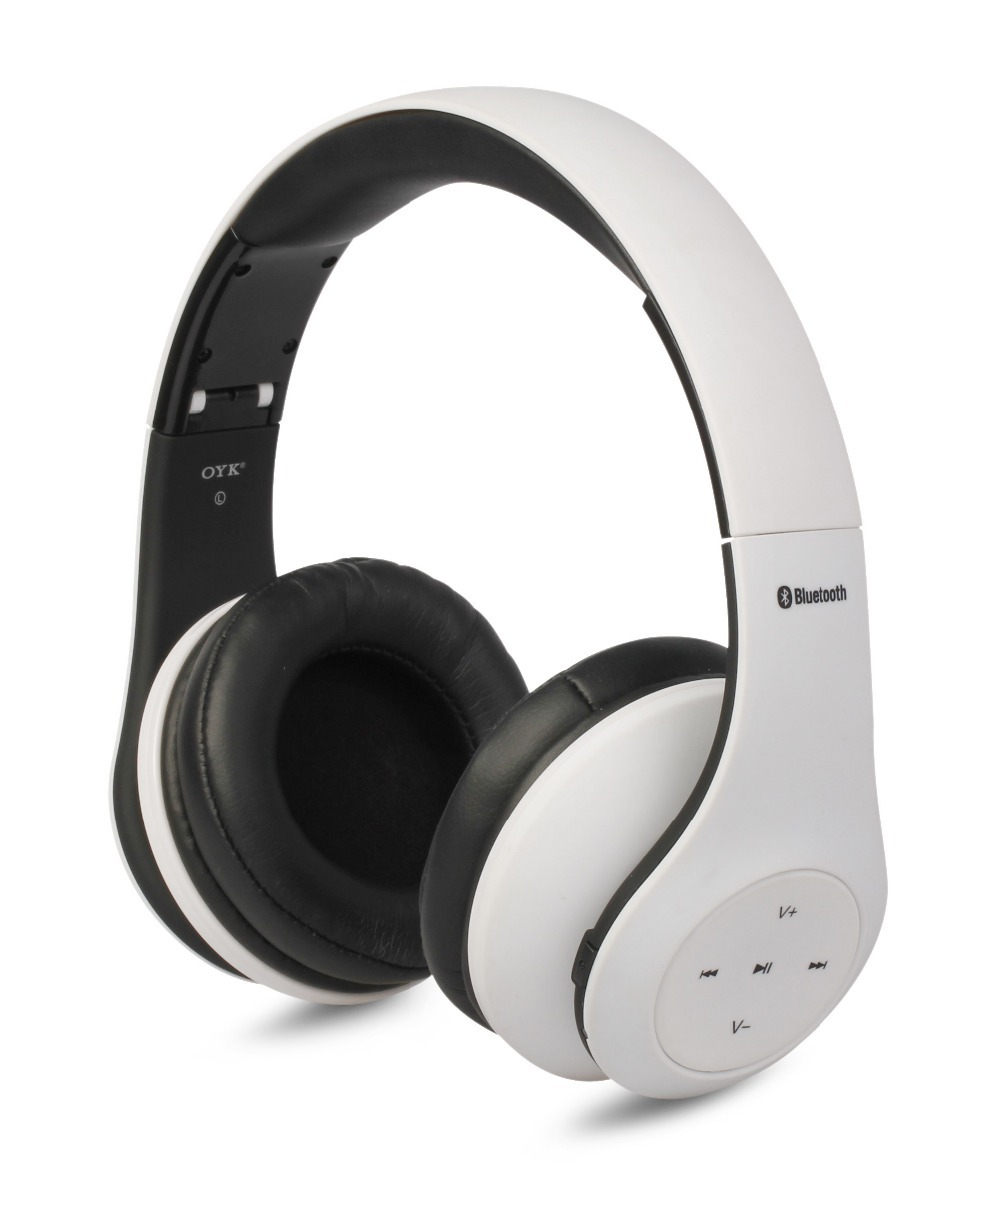 BM 8810 OYK Wireless Bluetooth Headphones For Mobile Phone Tablet PC MP3 Bluetooth Headset